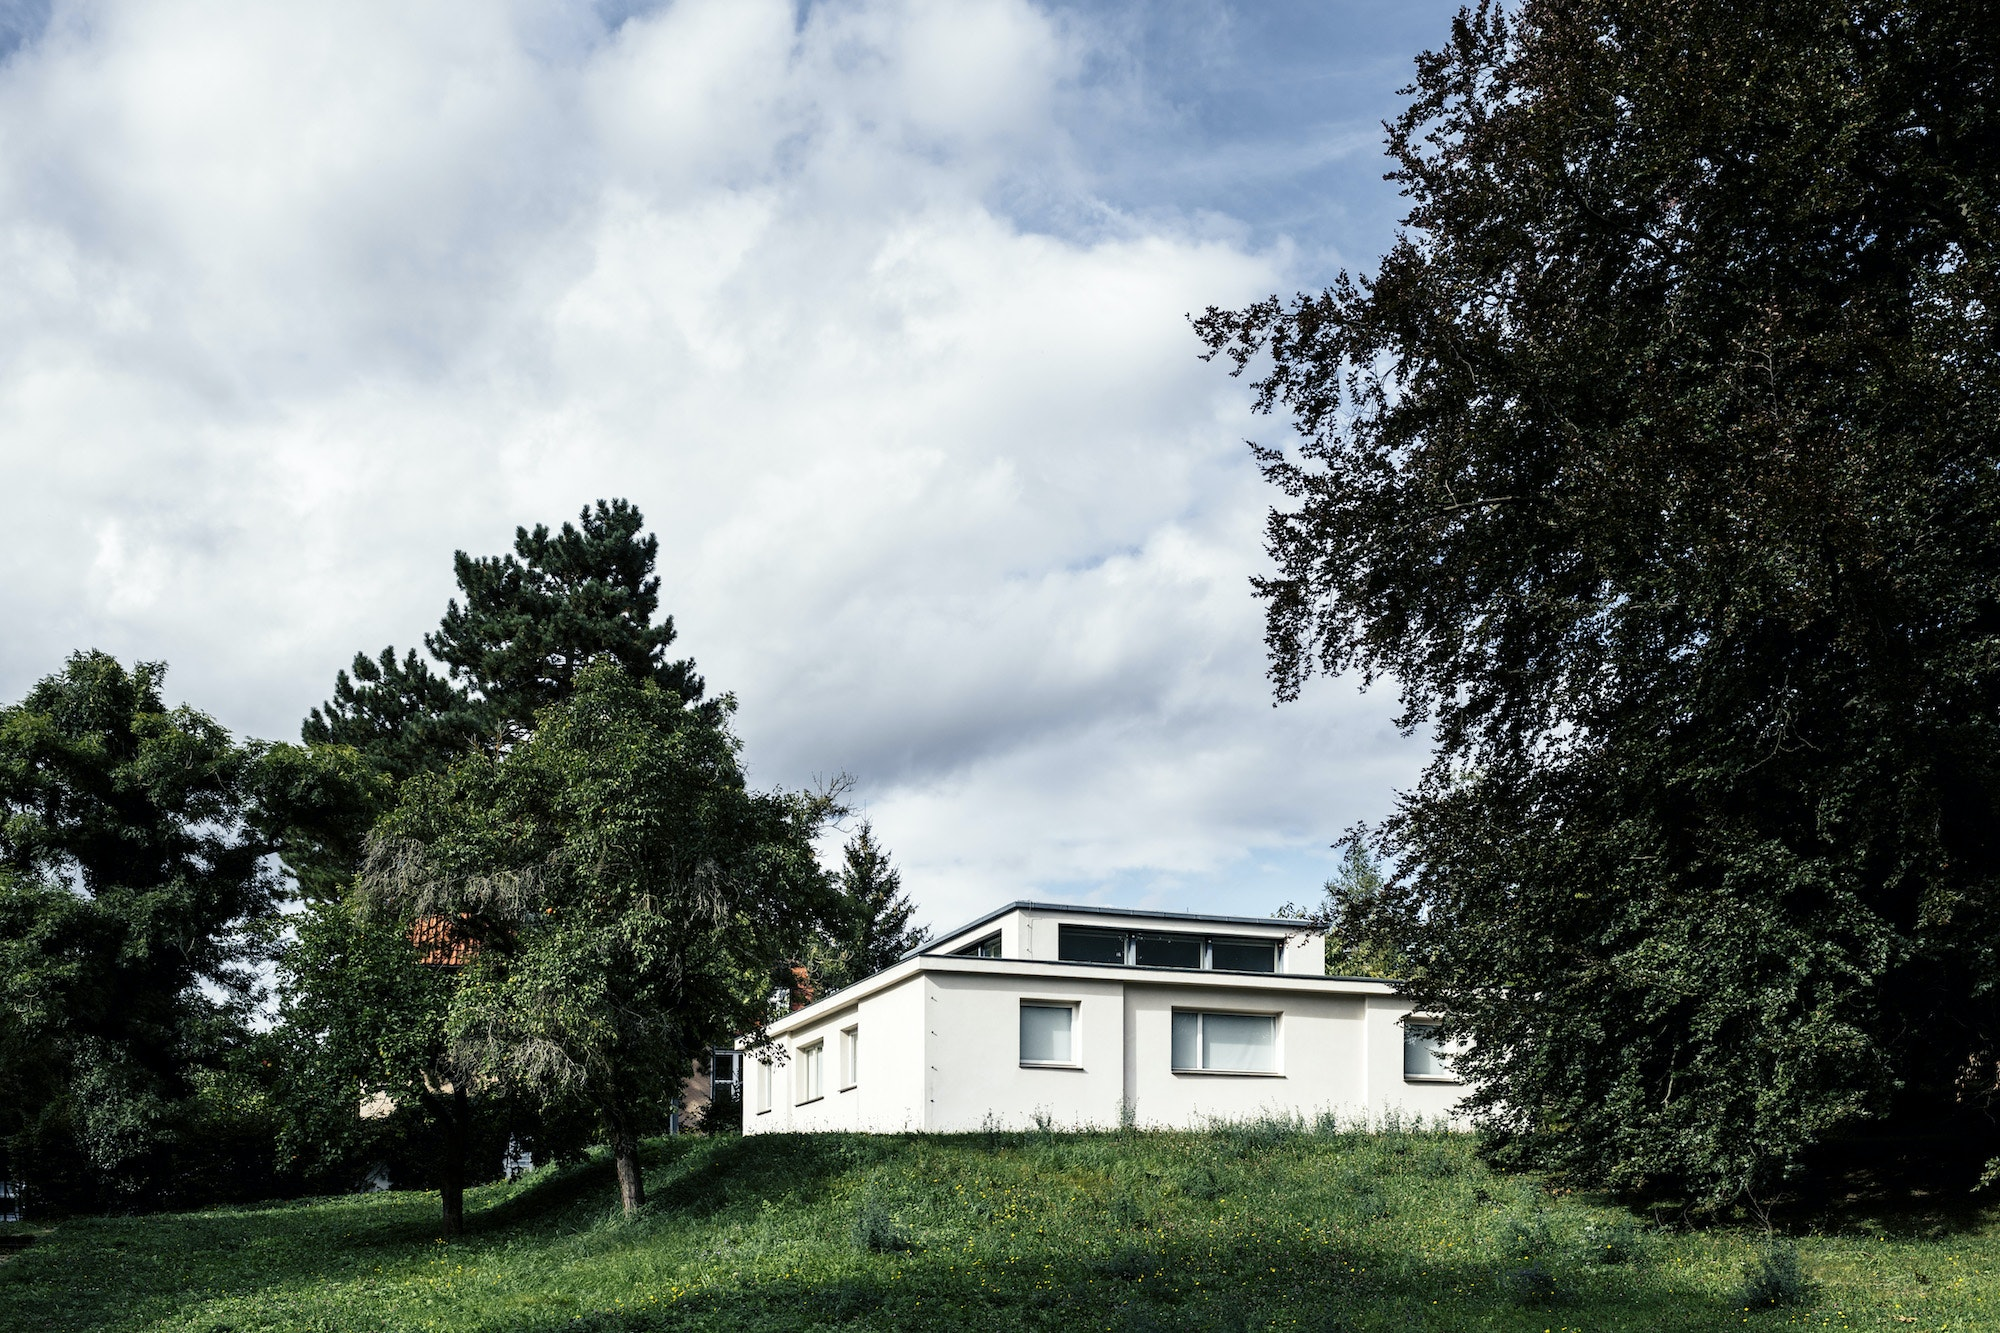 Weimar's Haus Am Horn, designed by architect Georg Muche in 1923, was the first building based on Bauhaus design principle.